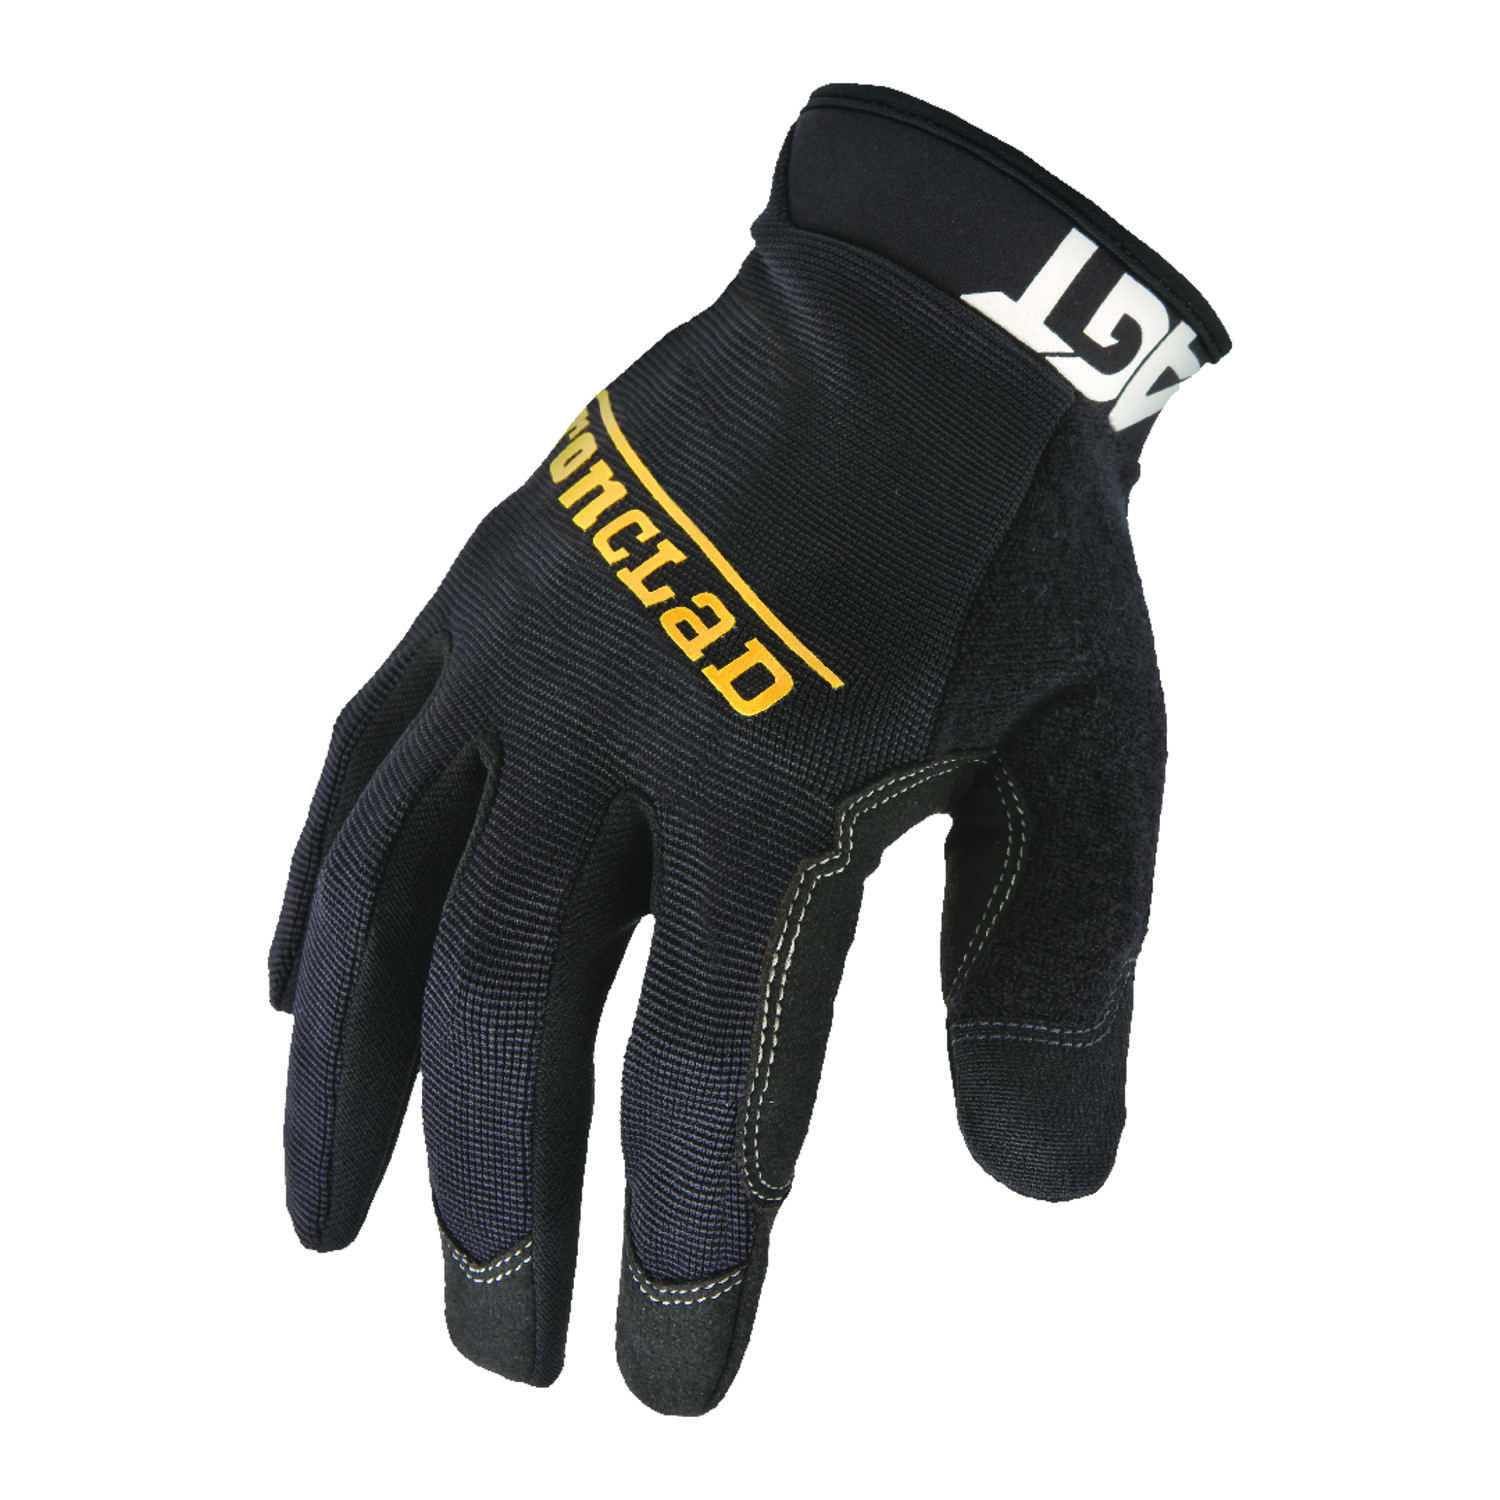 Ironclad  Men's  Synthetic Leather  Work  Gloves  Black  L